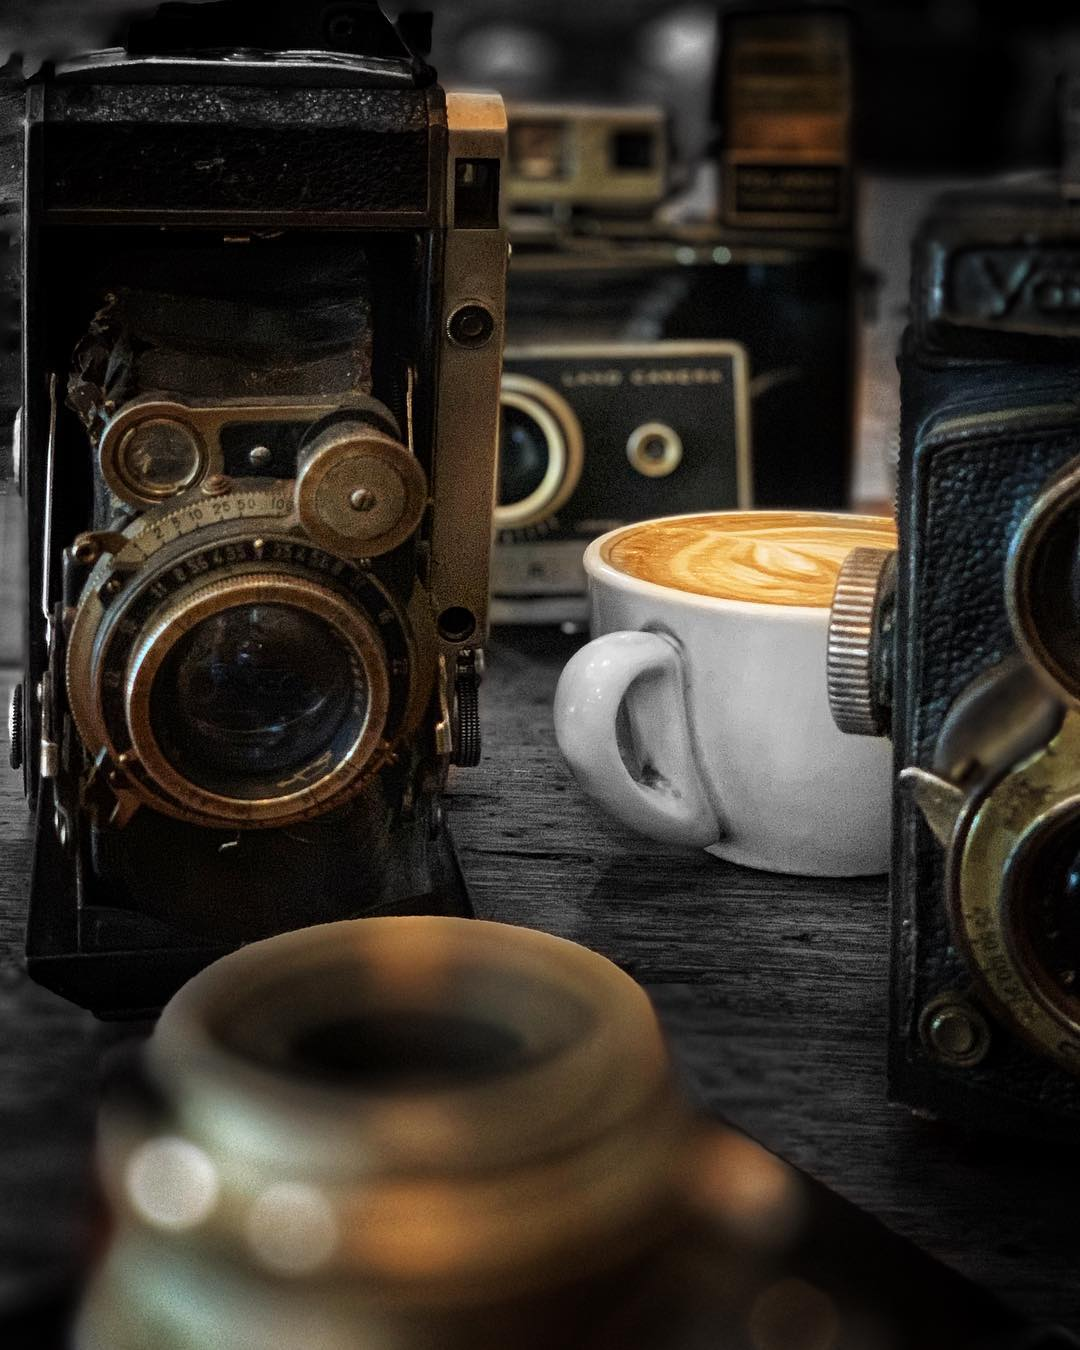 Capturing mood with vintage cameras